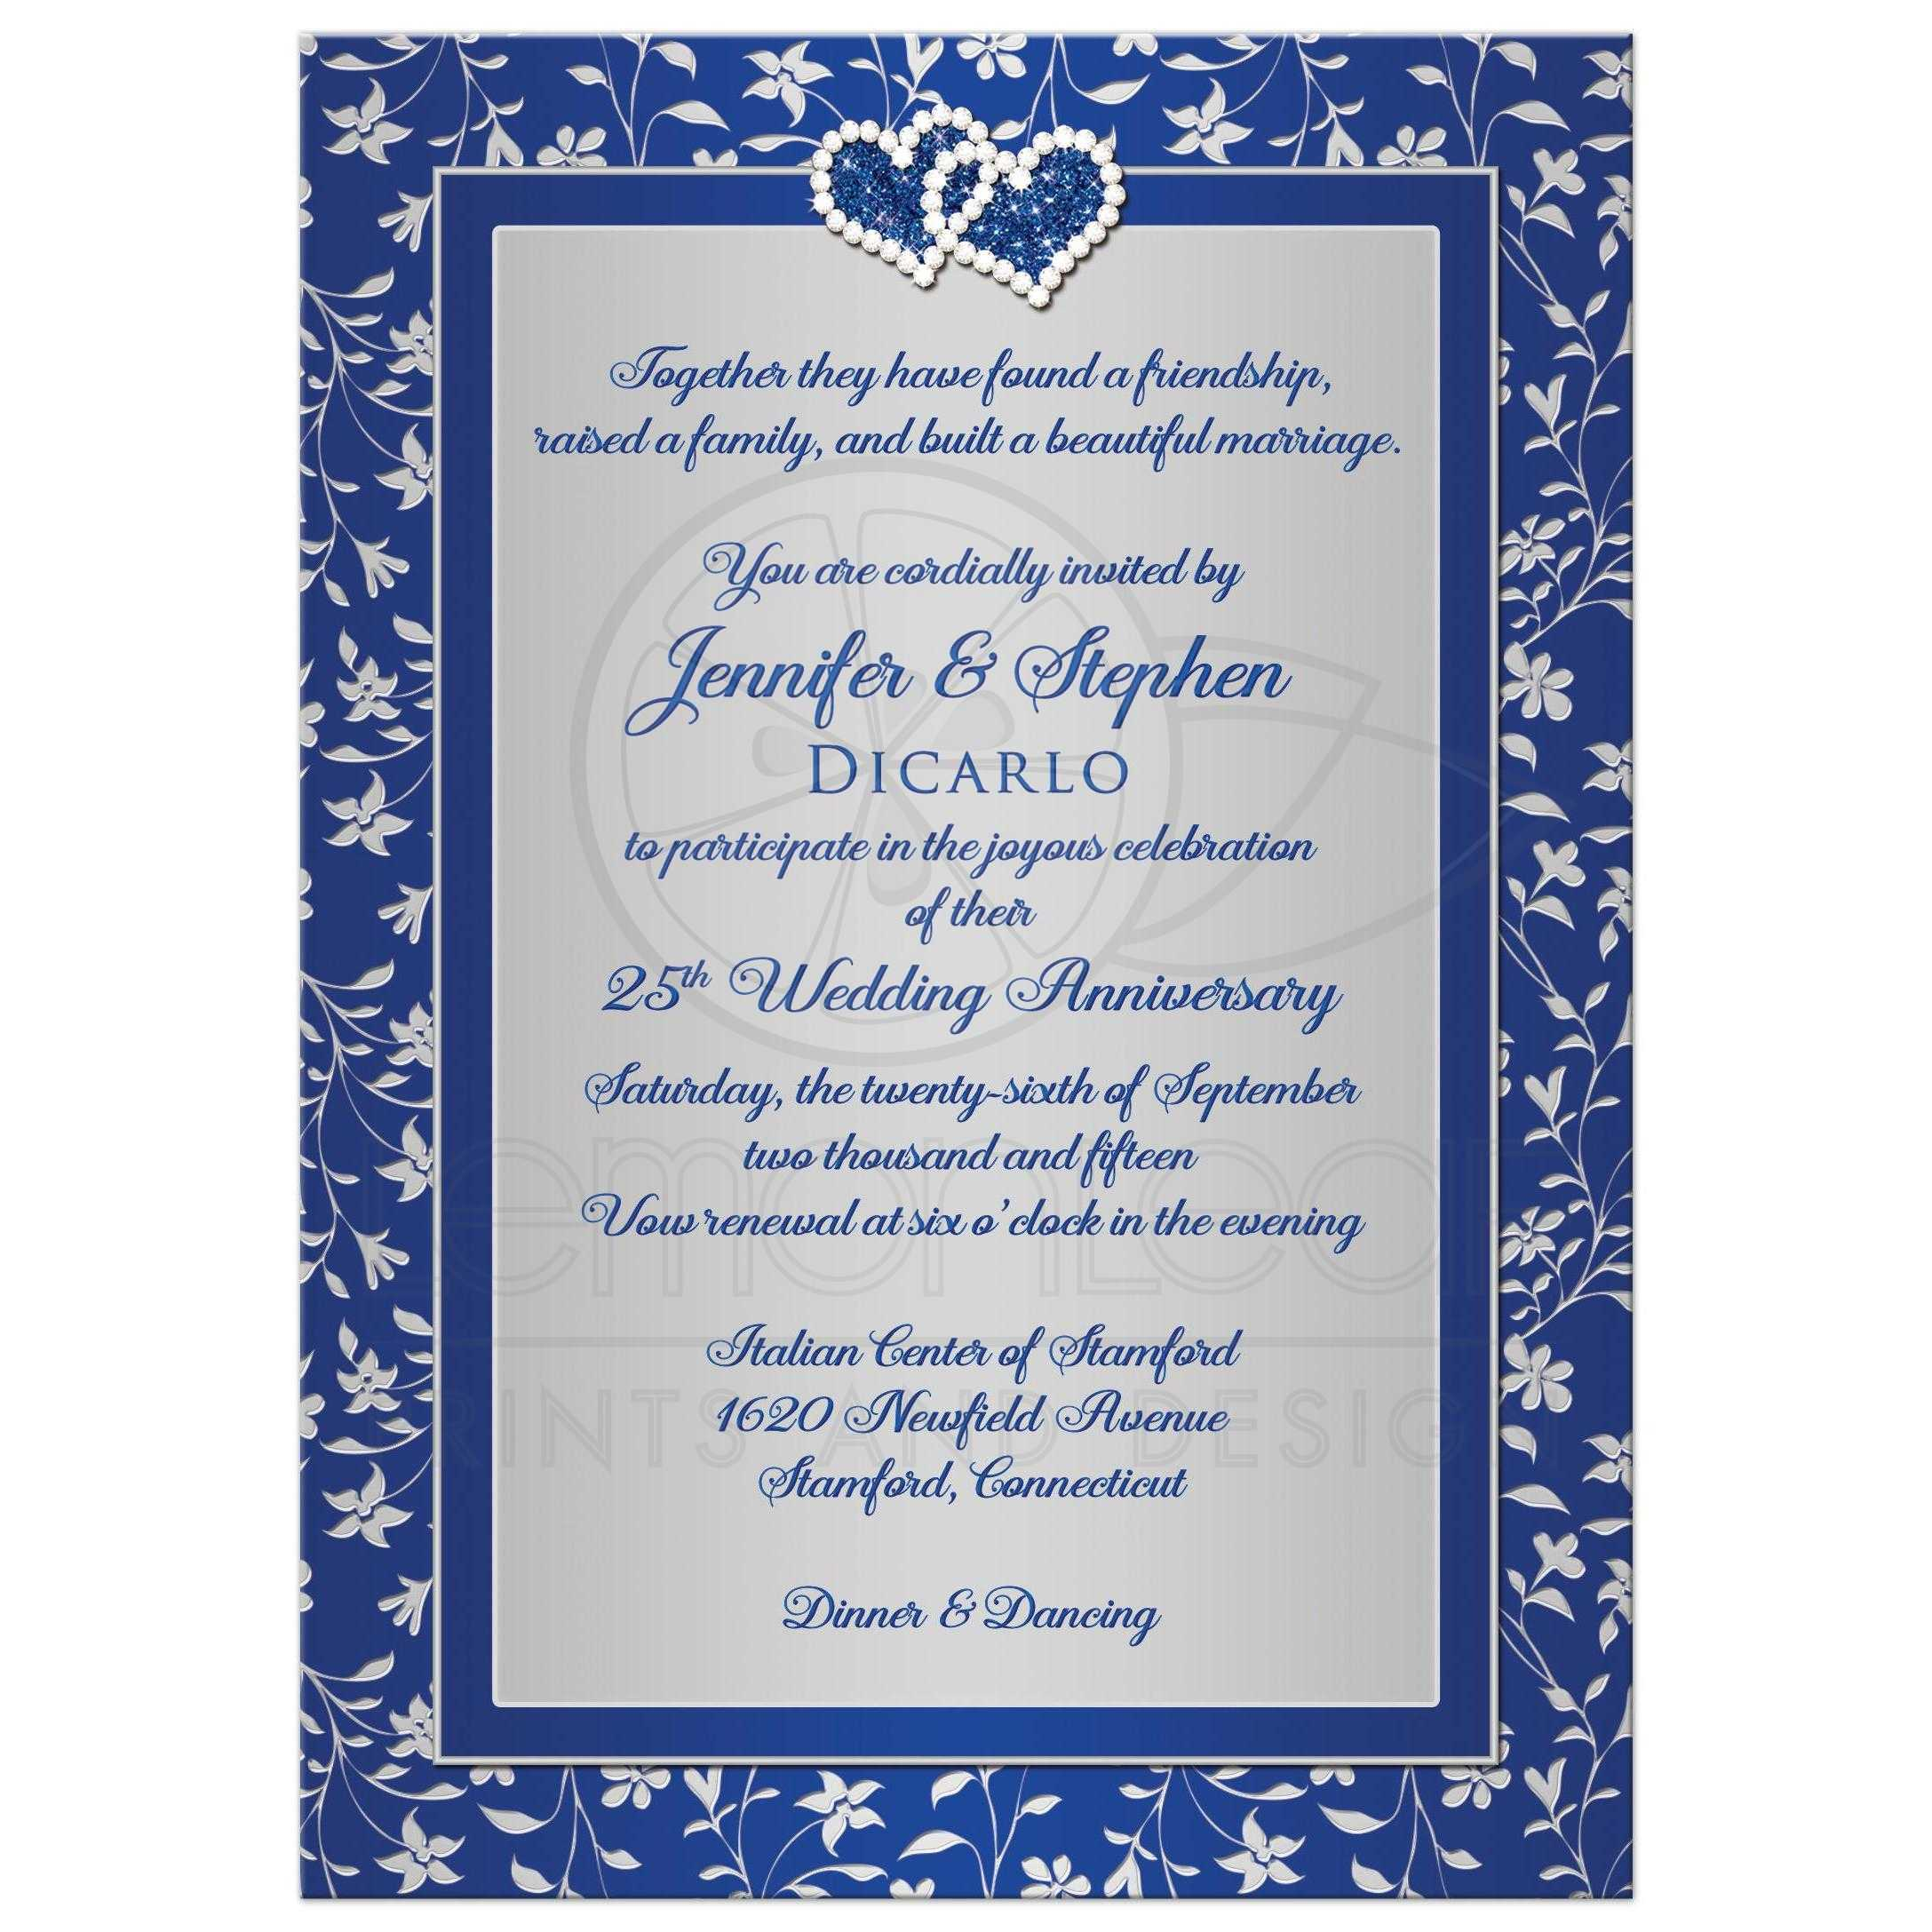 25th Wedding Anniversary Invitation 3 | Royal Blue, Silver Floral ...